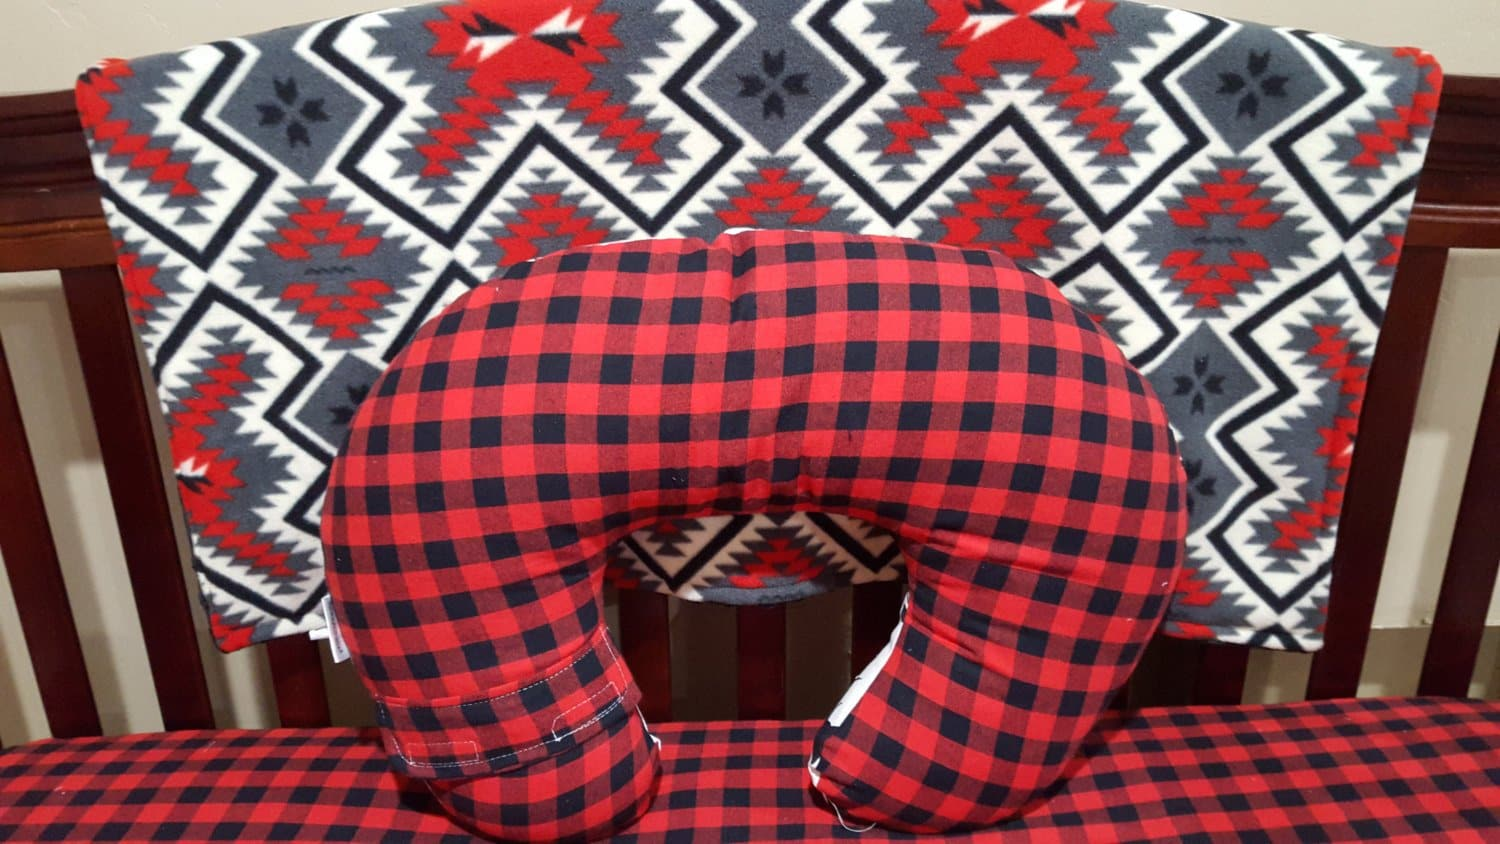 Nursing Pillow Cover -Red Black Buffalo Check and Minky Dot Boppy Cover